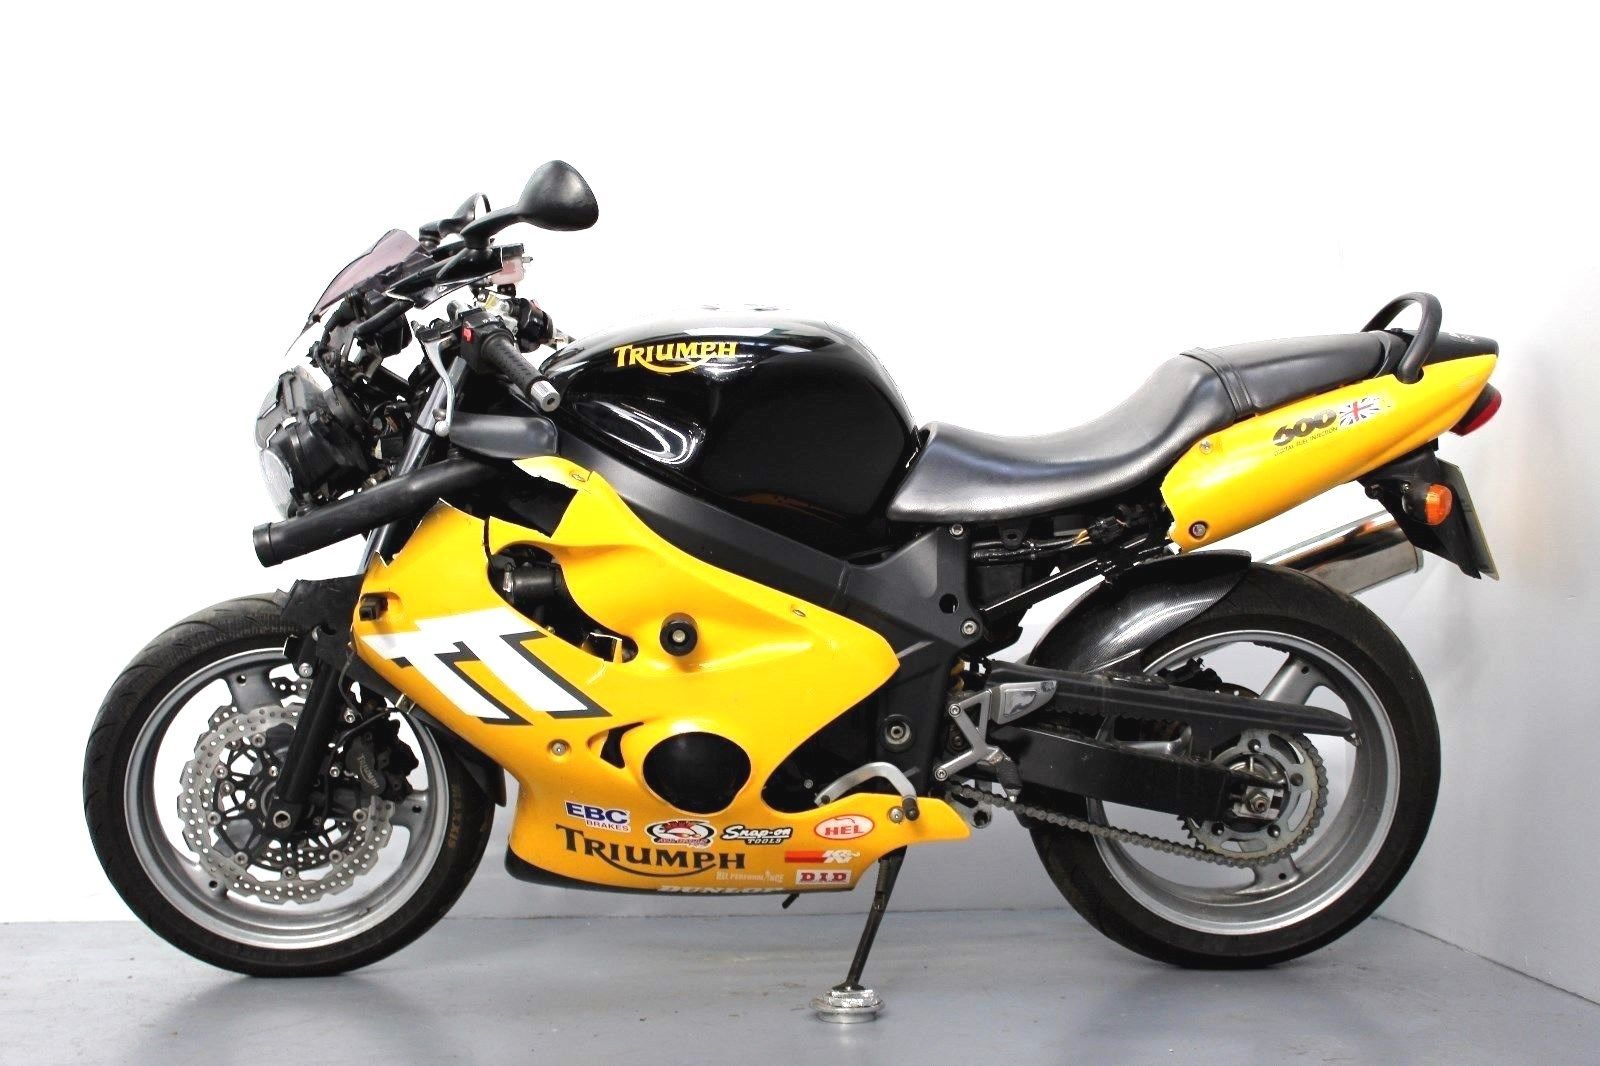 Tt600 Owners Ex Owners Post Your Pics Page 37